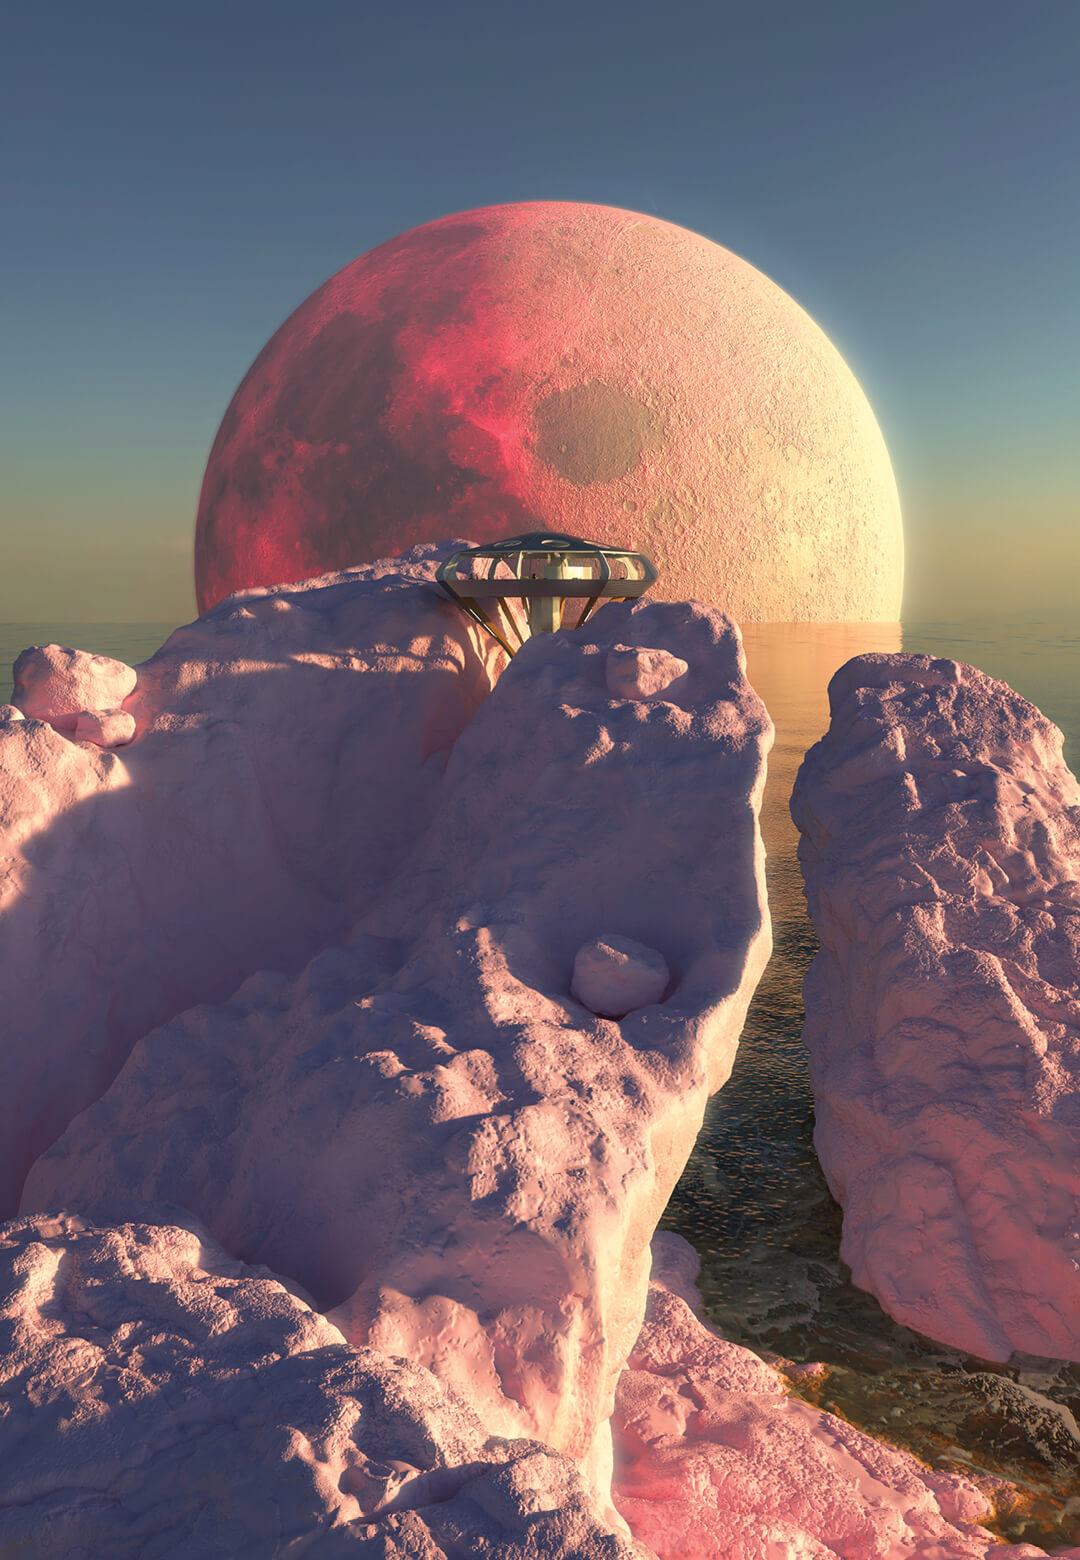 Charlotte Taylor and Zyva Studio imagine Neo Chemosphere against a blood pink moon  | Neo Chemosphere visualised by Charlotte Taylor and Zyva Studio | STIRworld